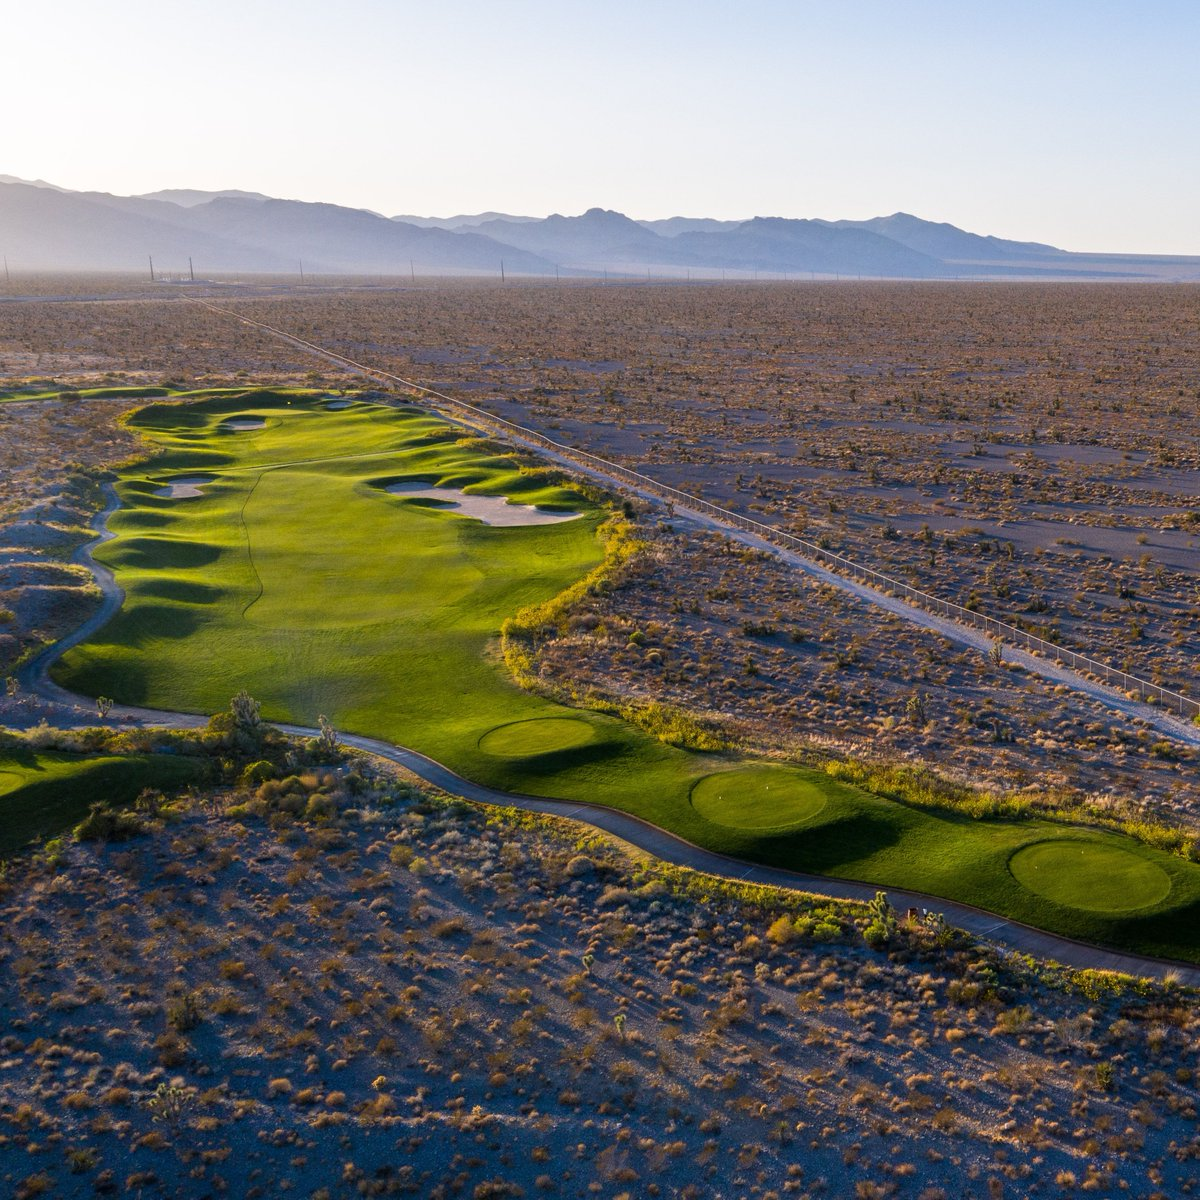 @realpuregolf looking forward to our annual trip in October. #tspga #vegas https://t.co/crePoTfxEx